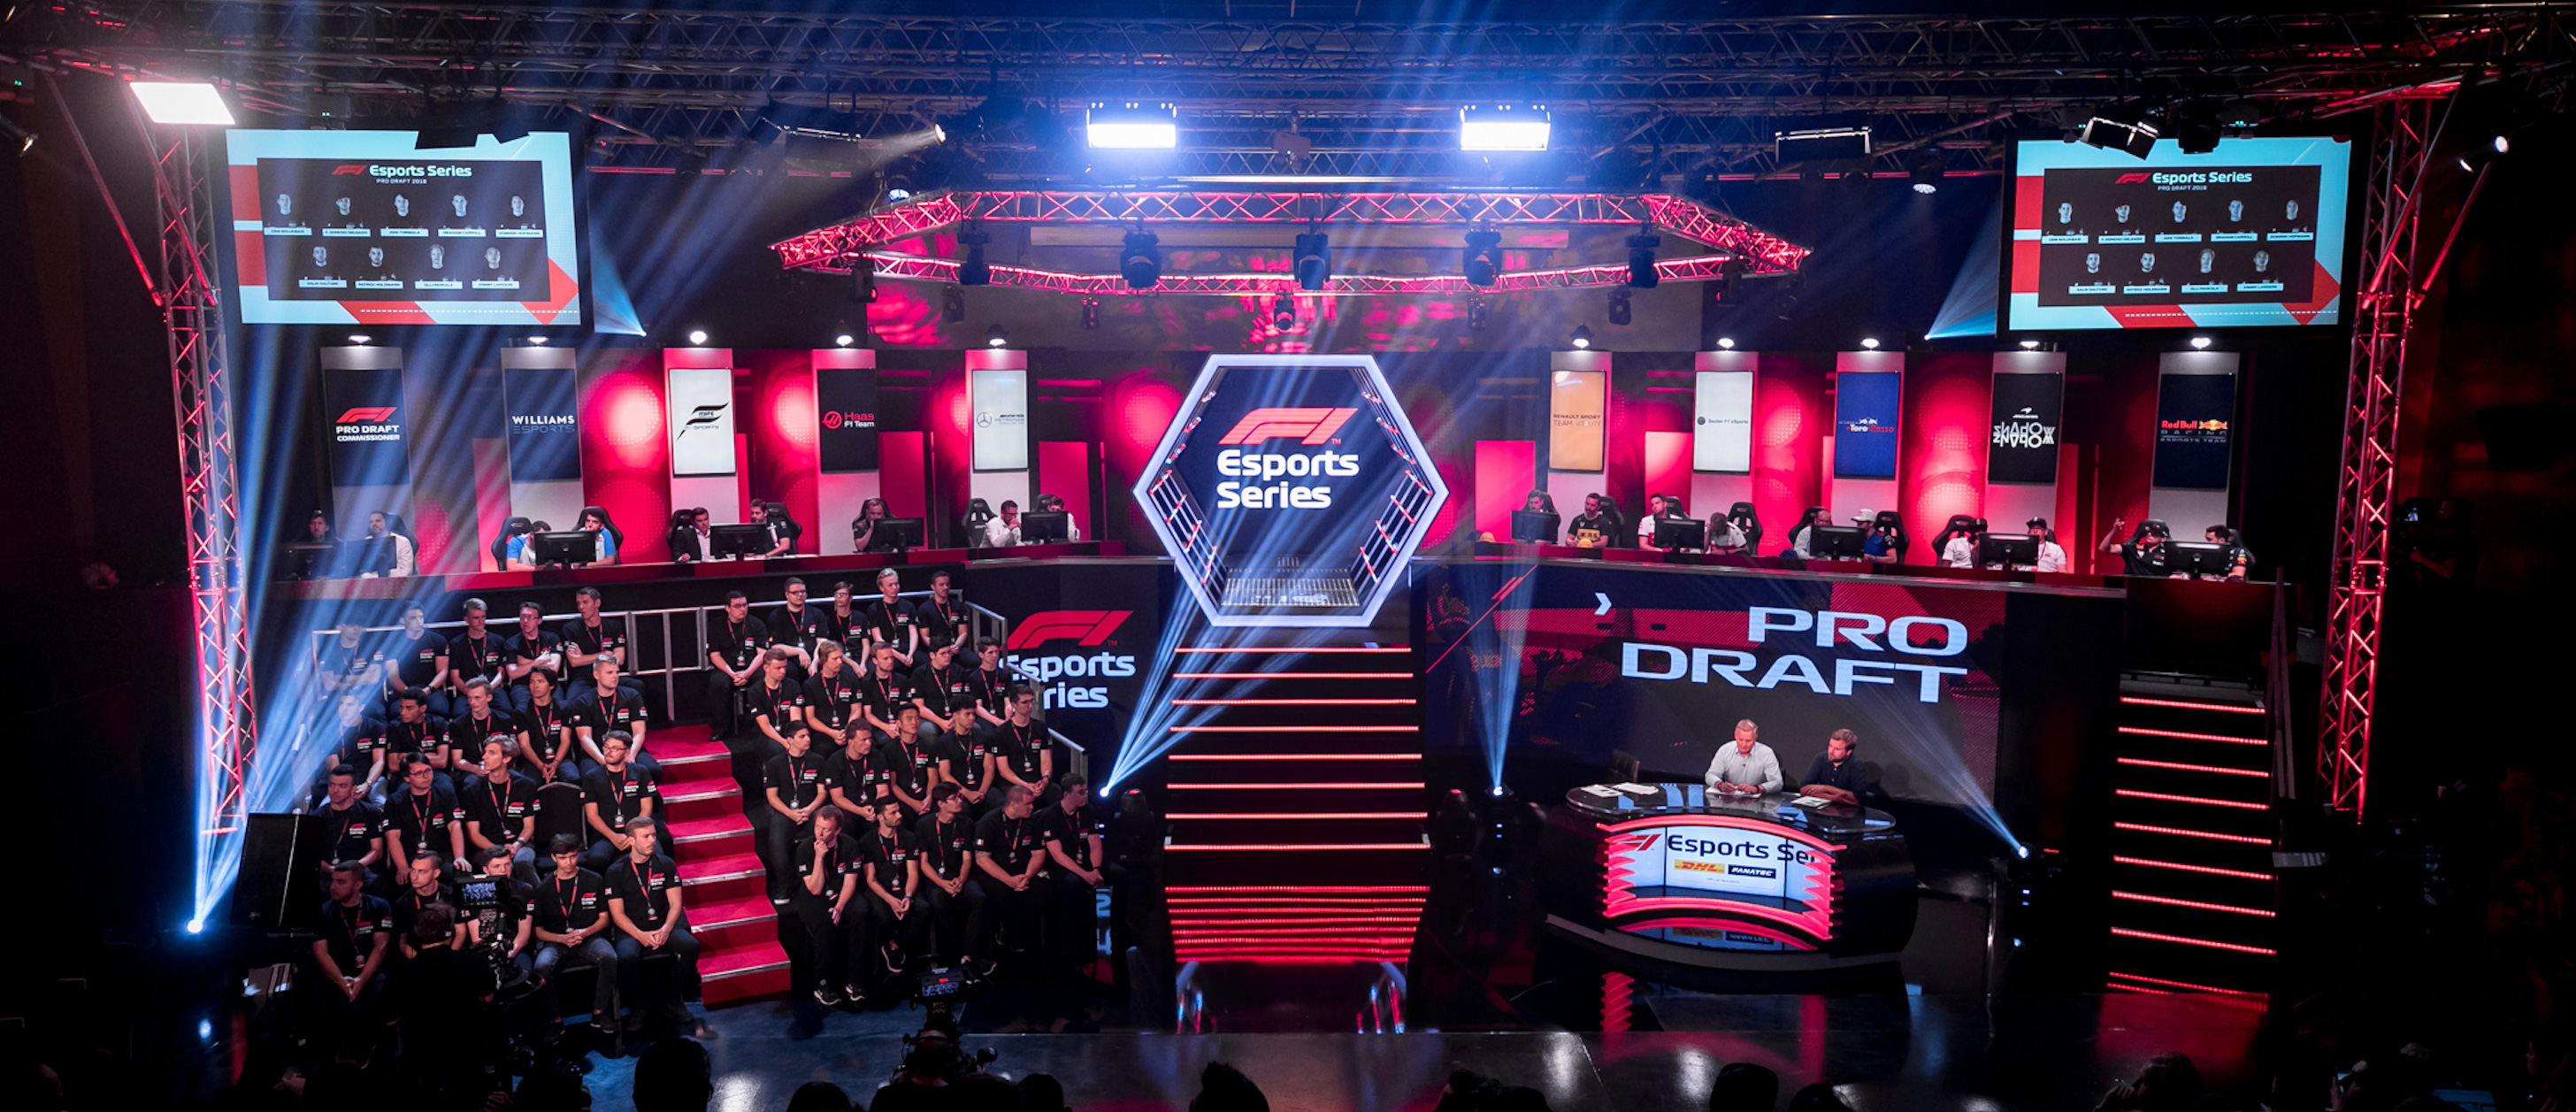 F1 Esports Pro Draft 2019… Meet the Drivers!